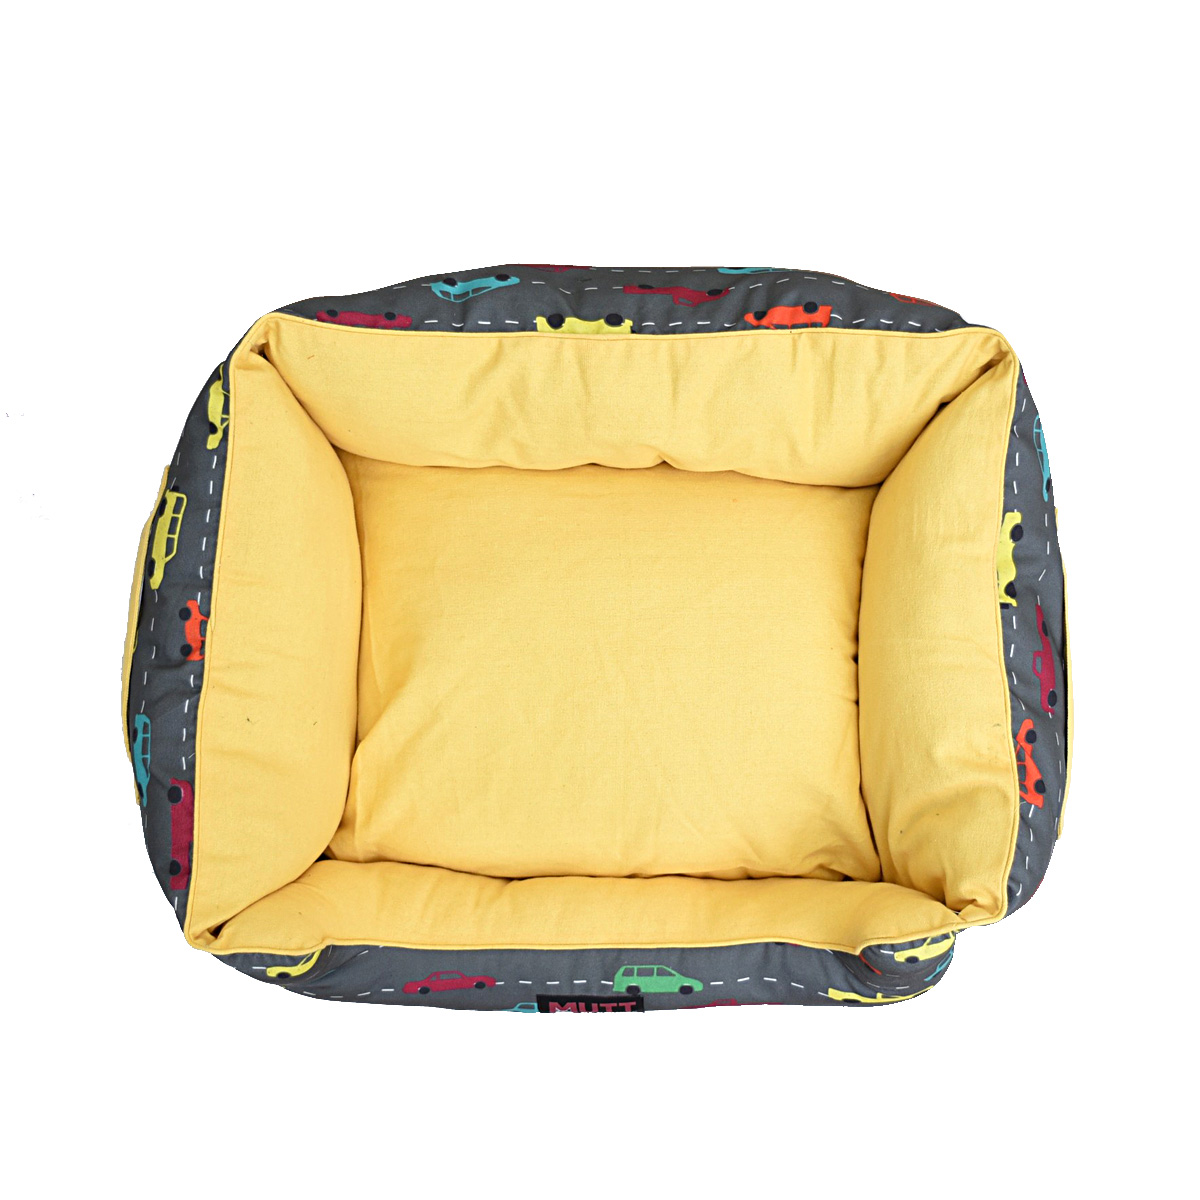 Mutt Of Course Lounger Bed For Dogs - Need for Speed - Small